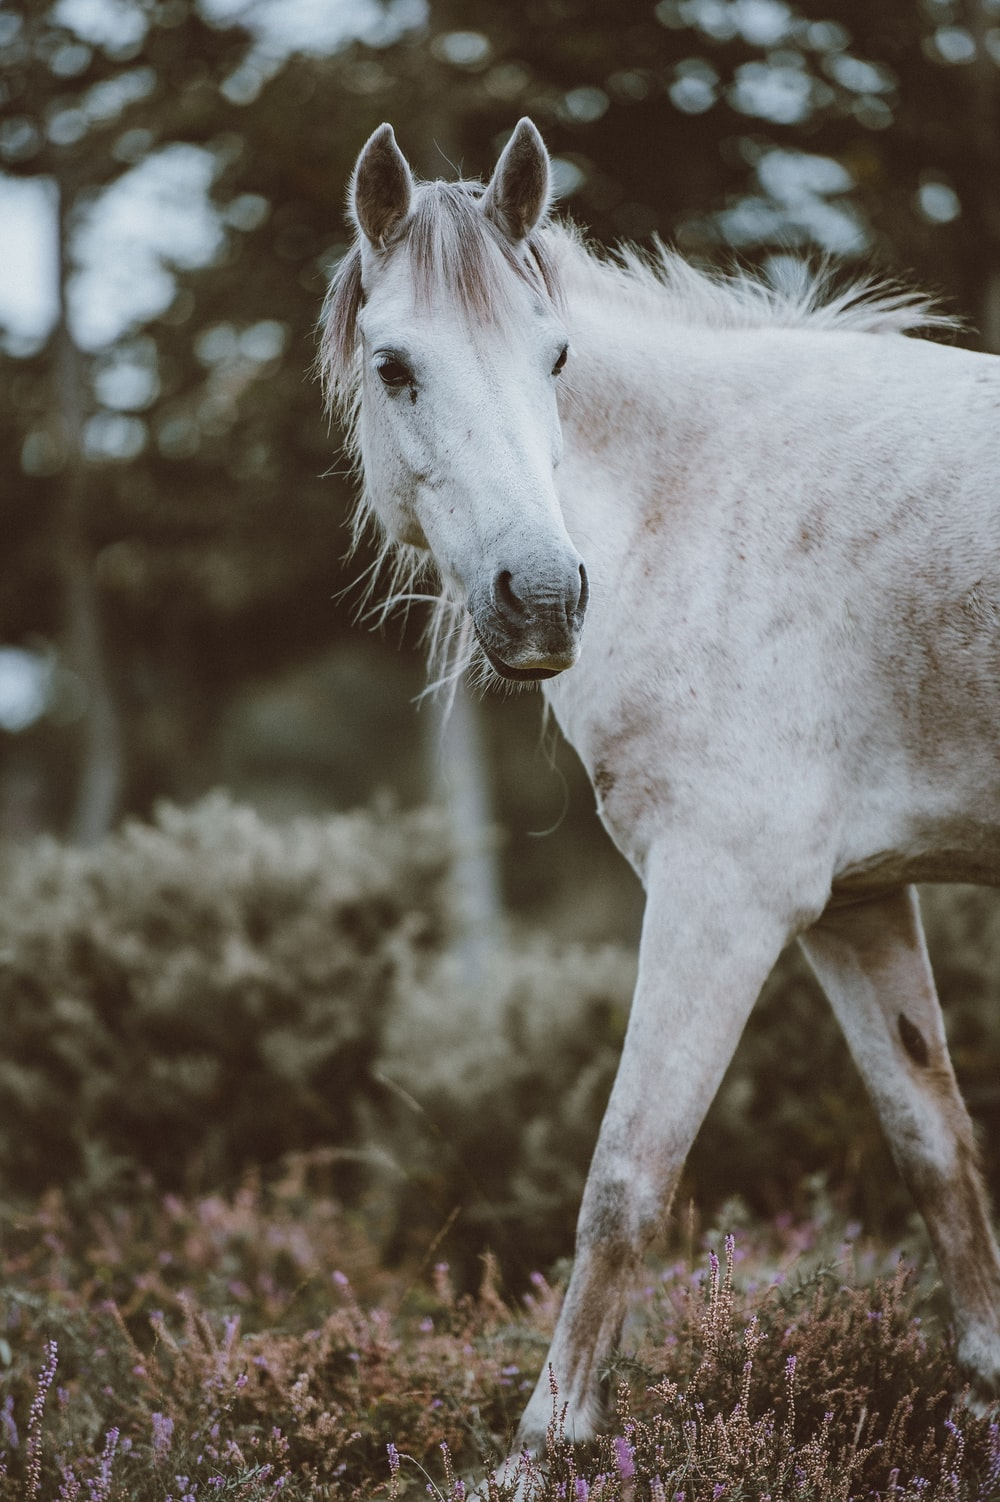 selective focus photography of white horse near green leaf plant